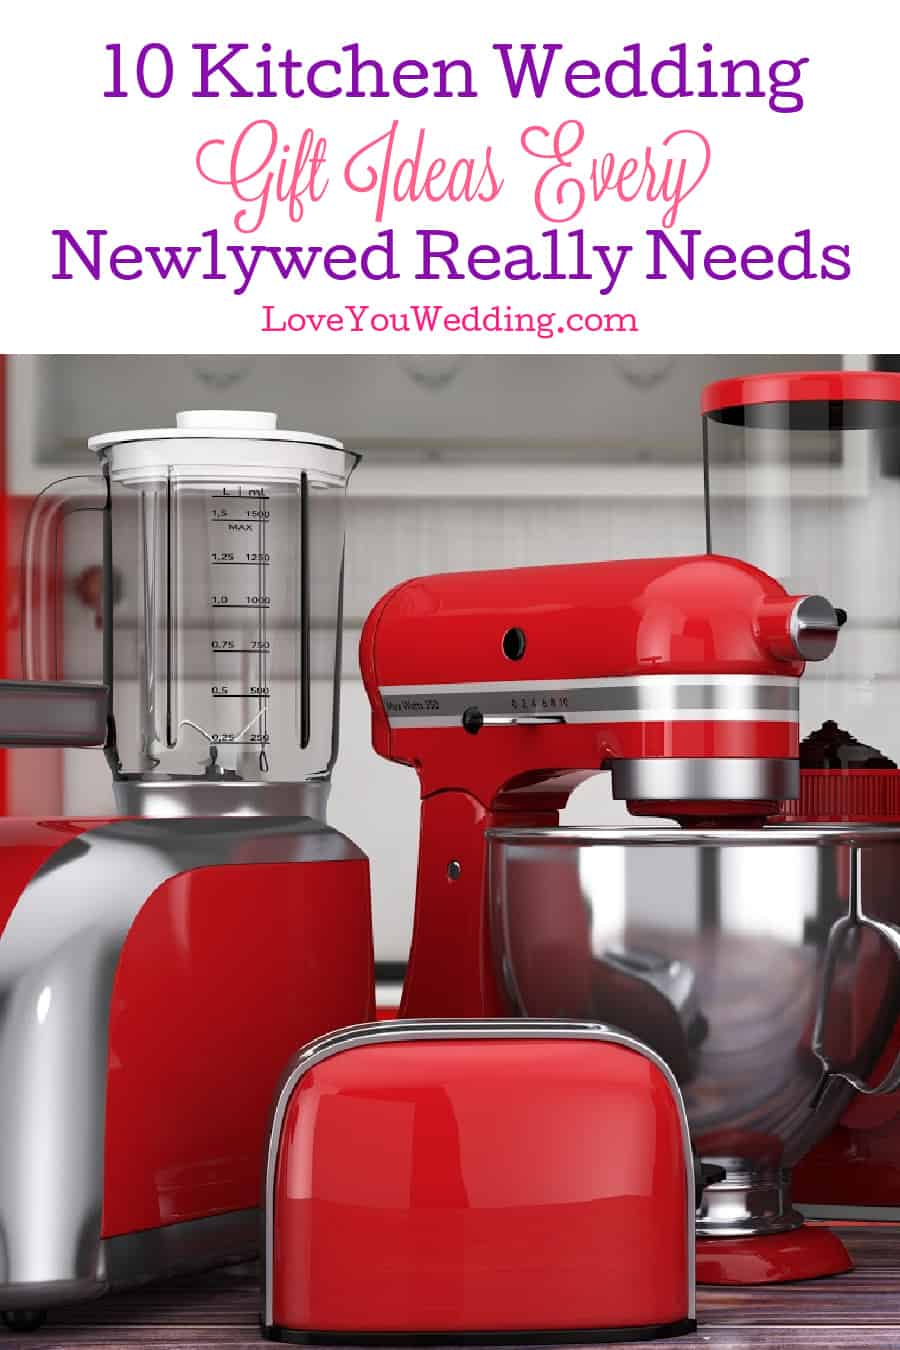 Looking for some great kitchen wedding gifts that are actually super useful? Check out 10 of our favorite appliances to give!